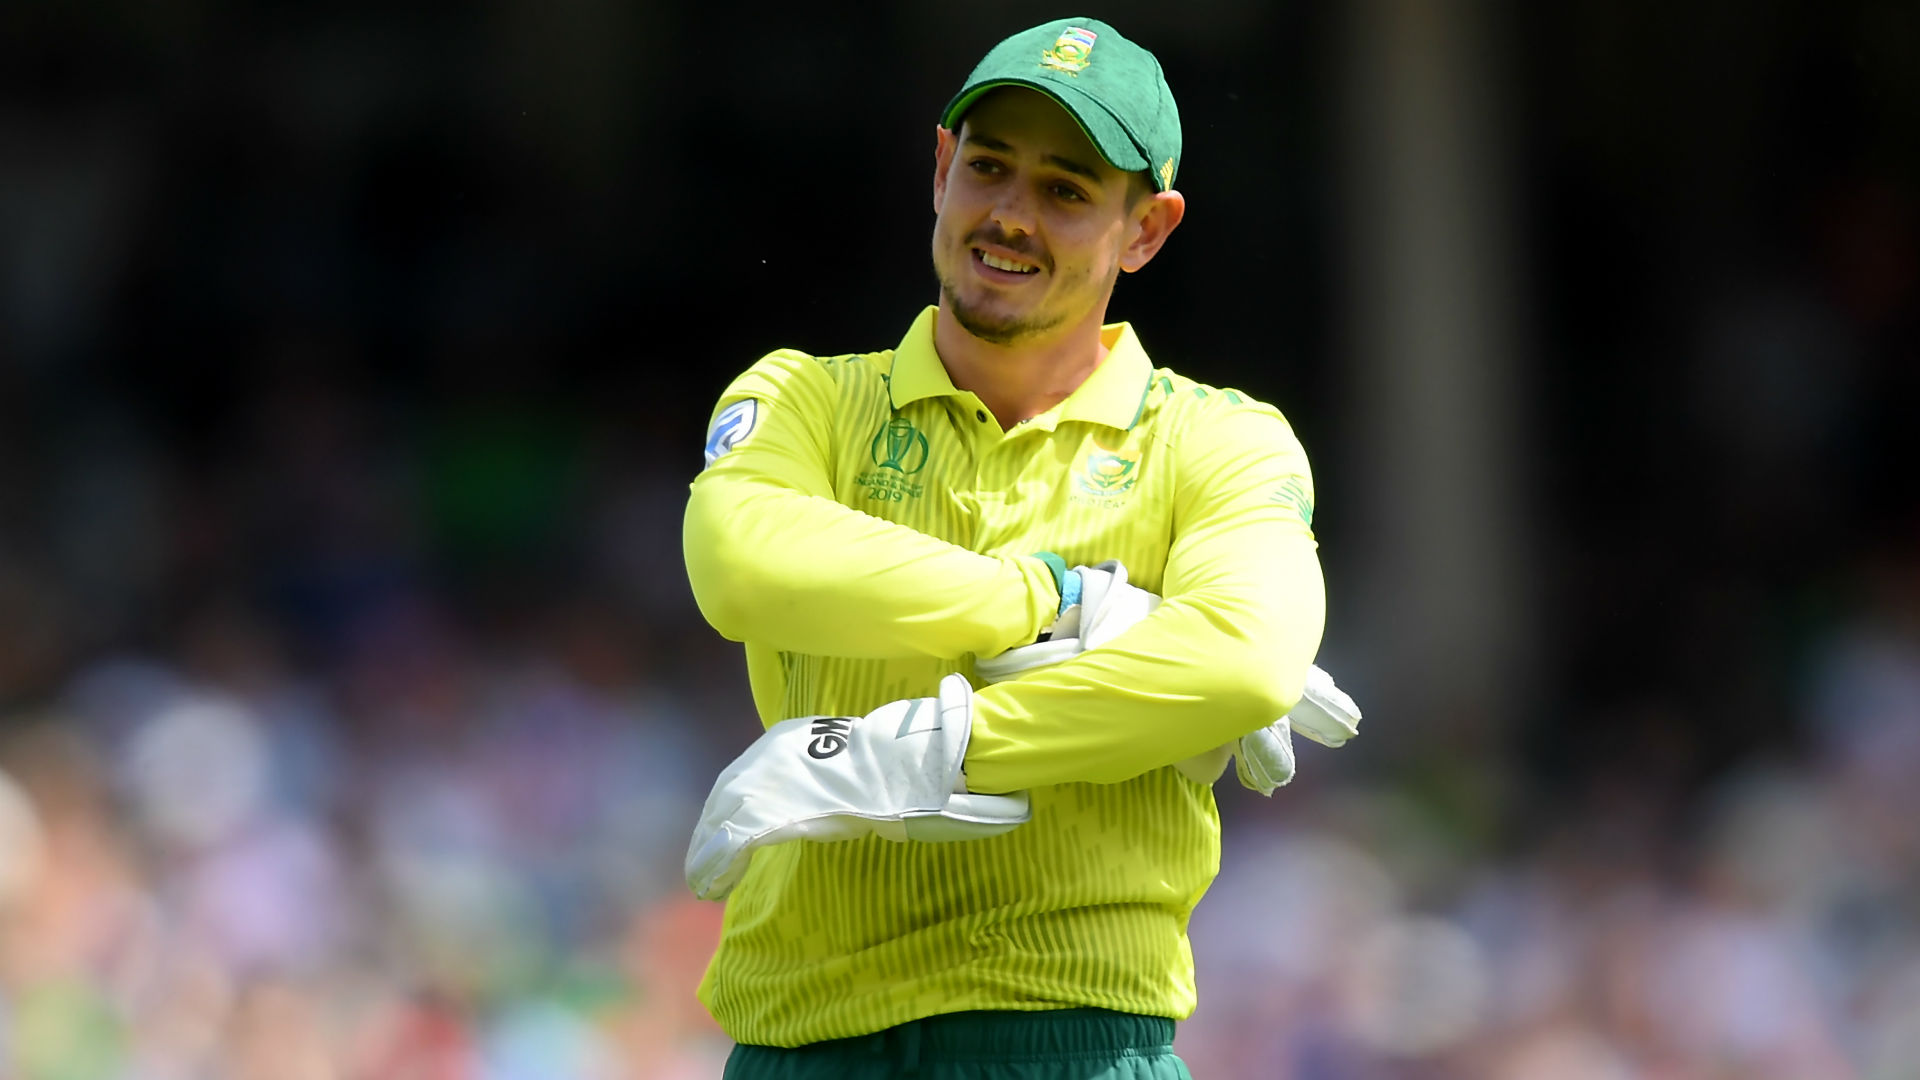 New Zealand v South Africa: World Cup semi-final hopes at stake for Proteas